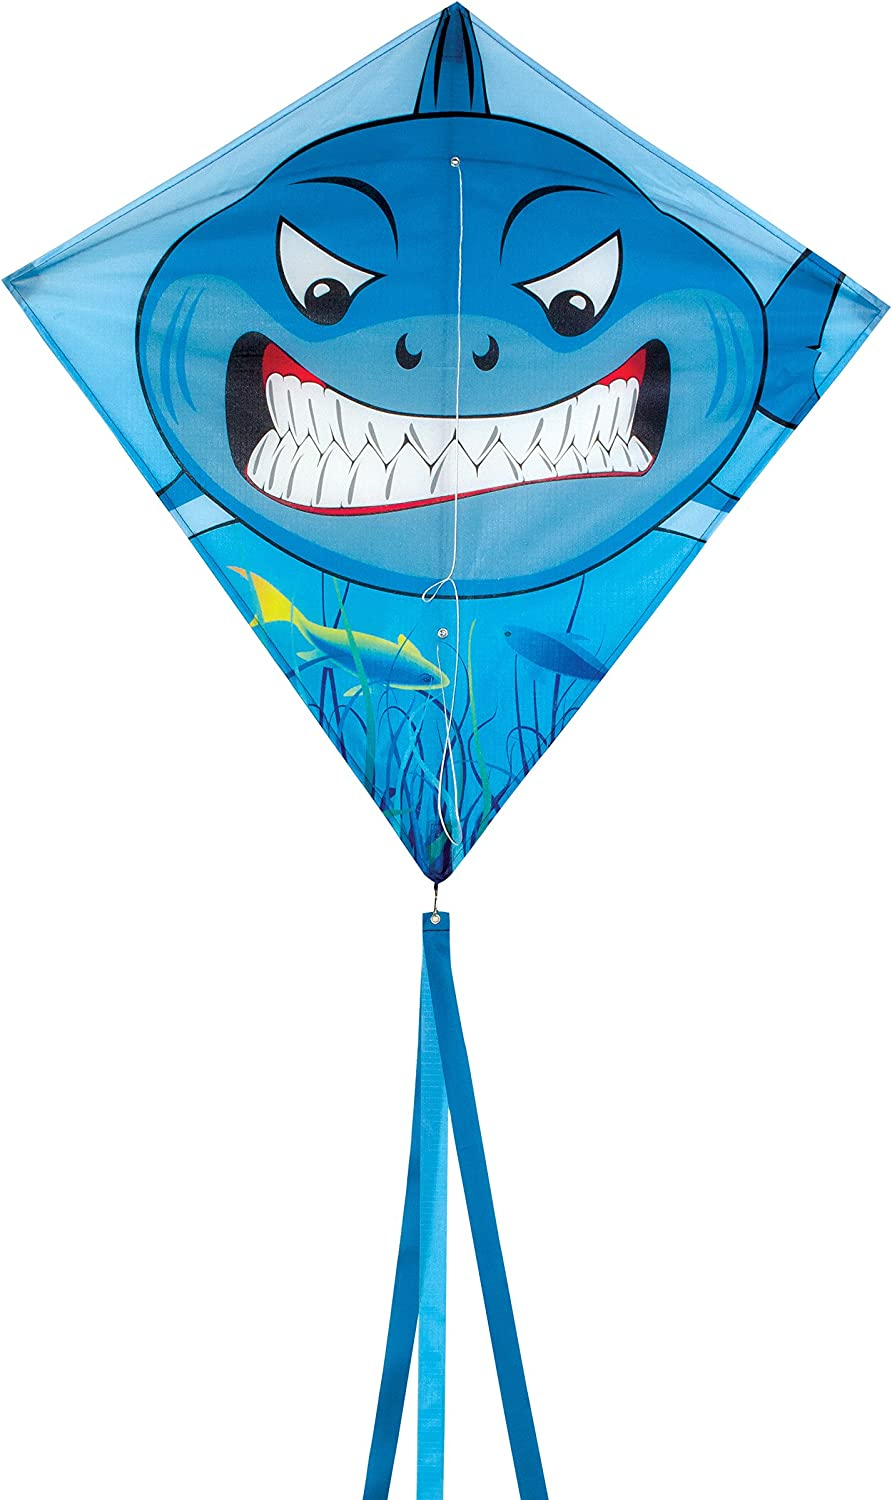 4d6e13b0bacb In the Breeze 3219 30 Diamond Kite Line Includes Kite Line and Bag ...